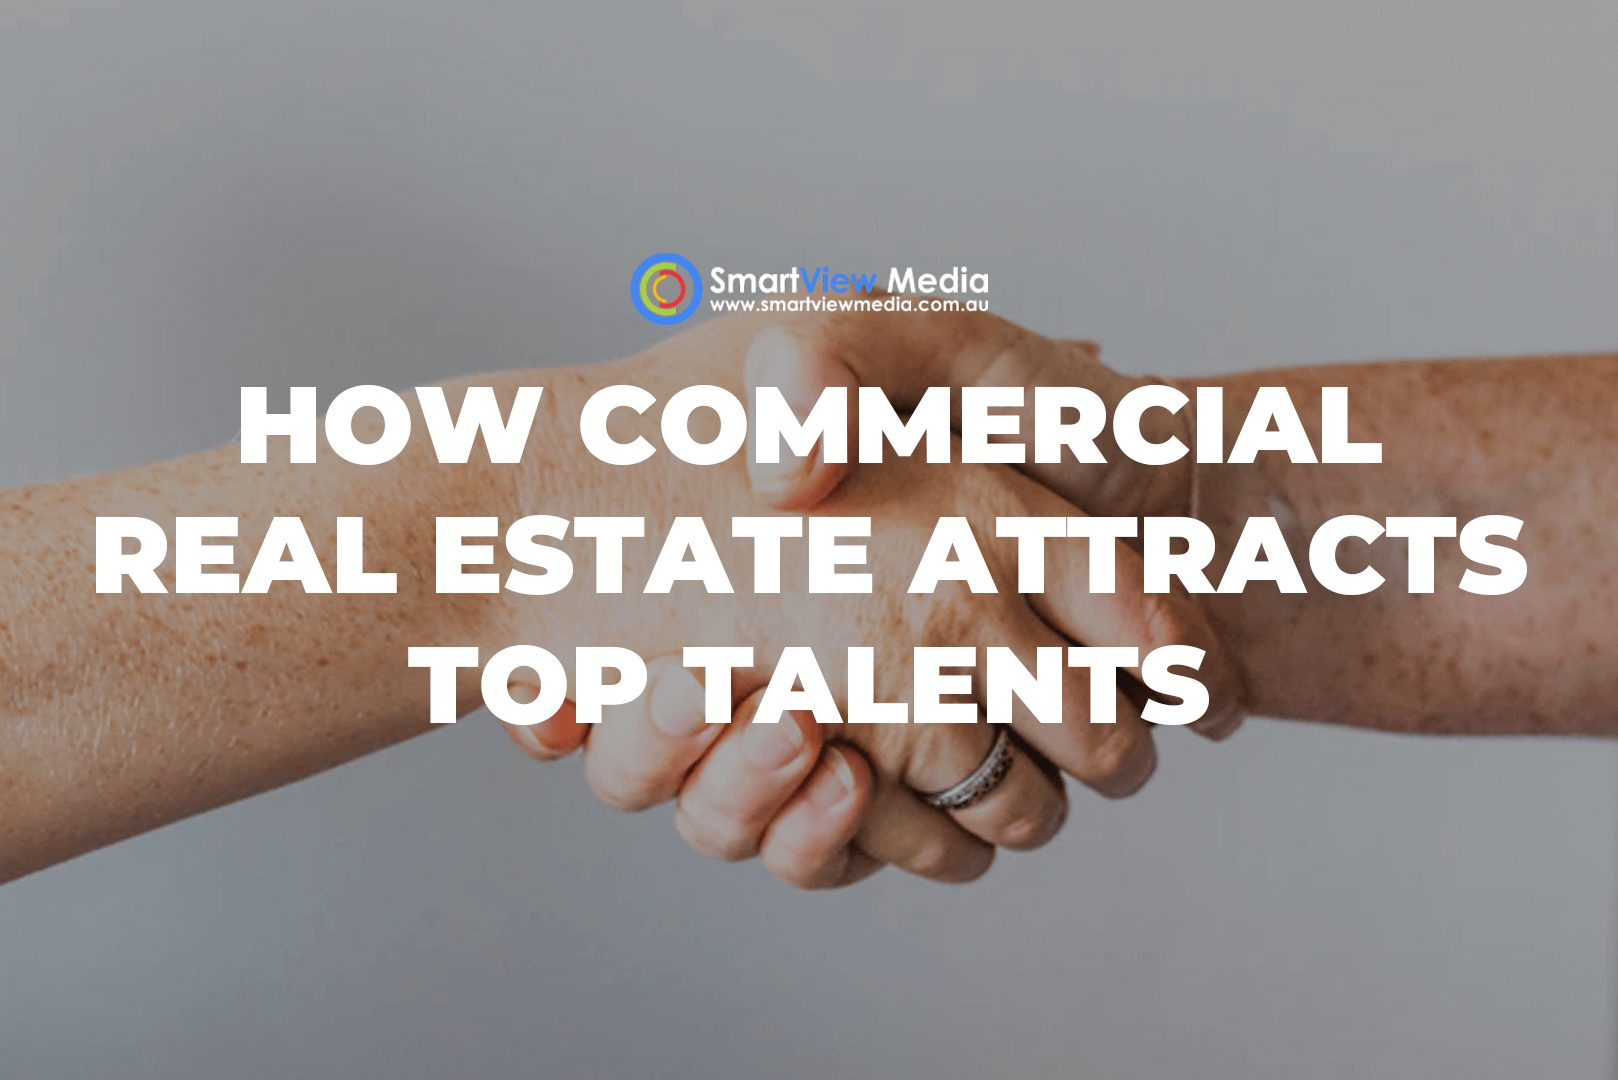 How Commercial Real Estate Attracts Top Talents